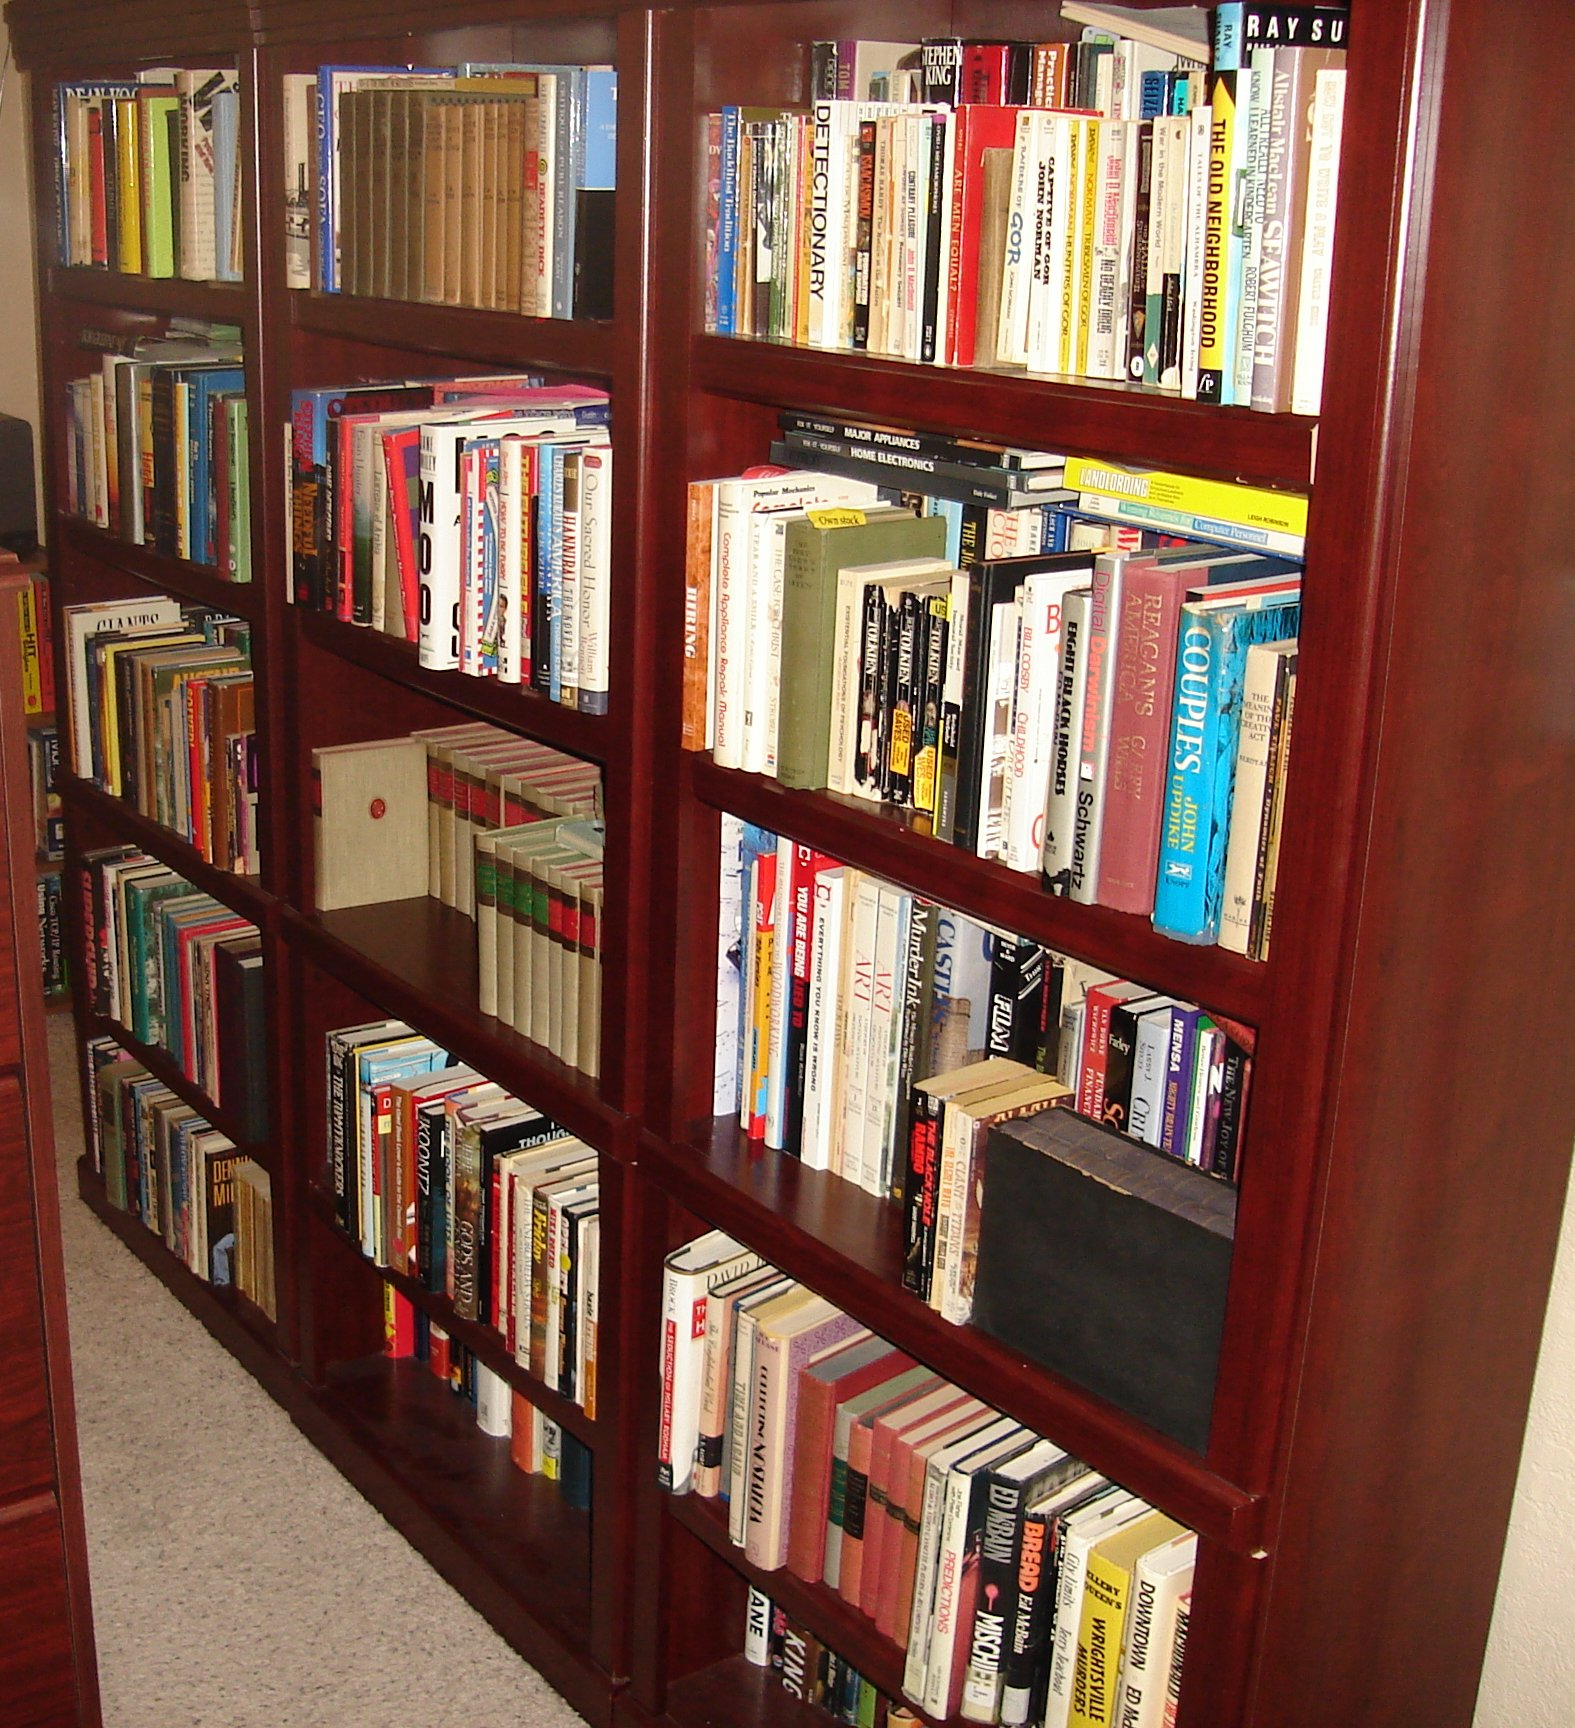 My to-read bookshelves, 2007